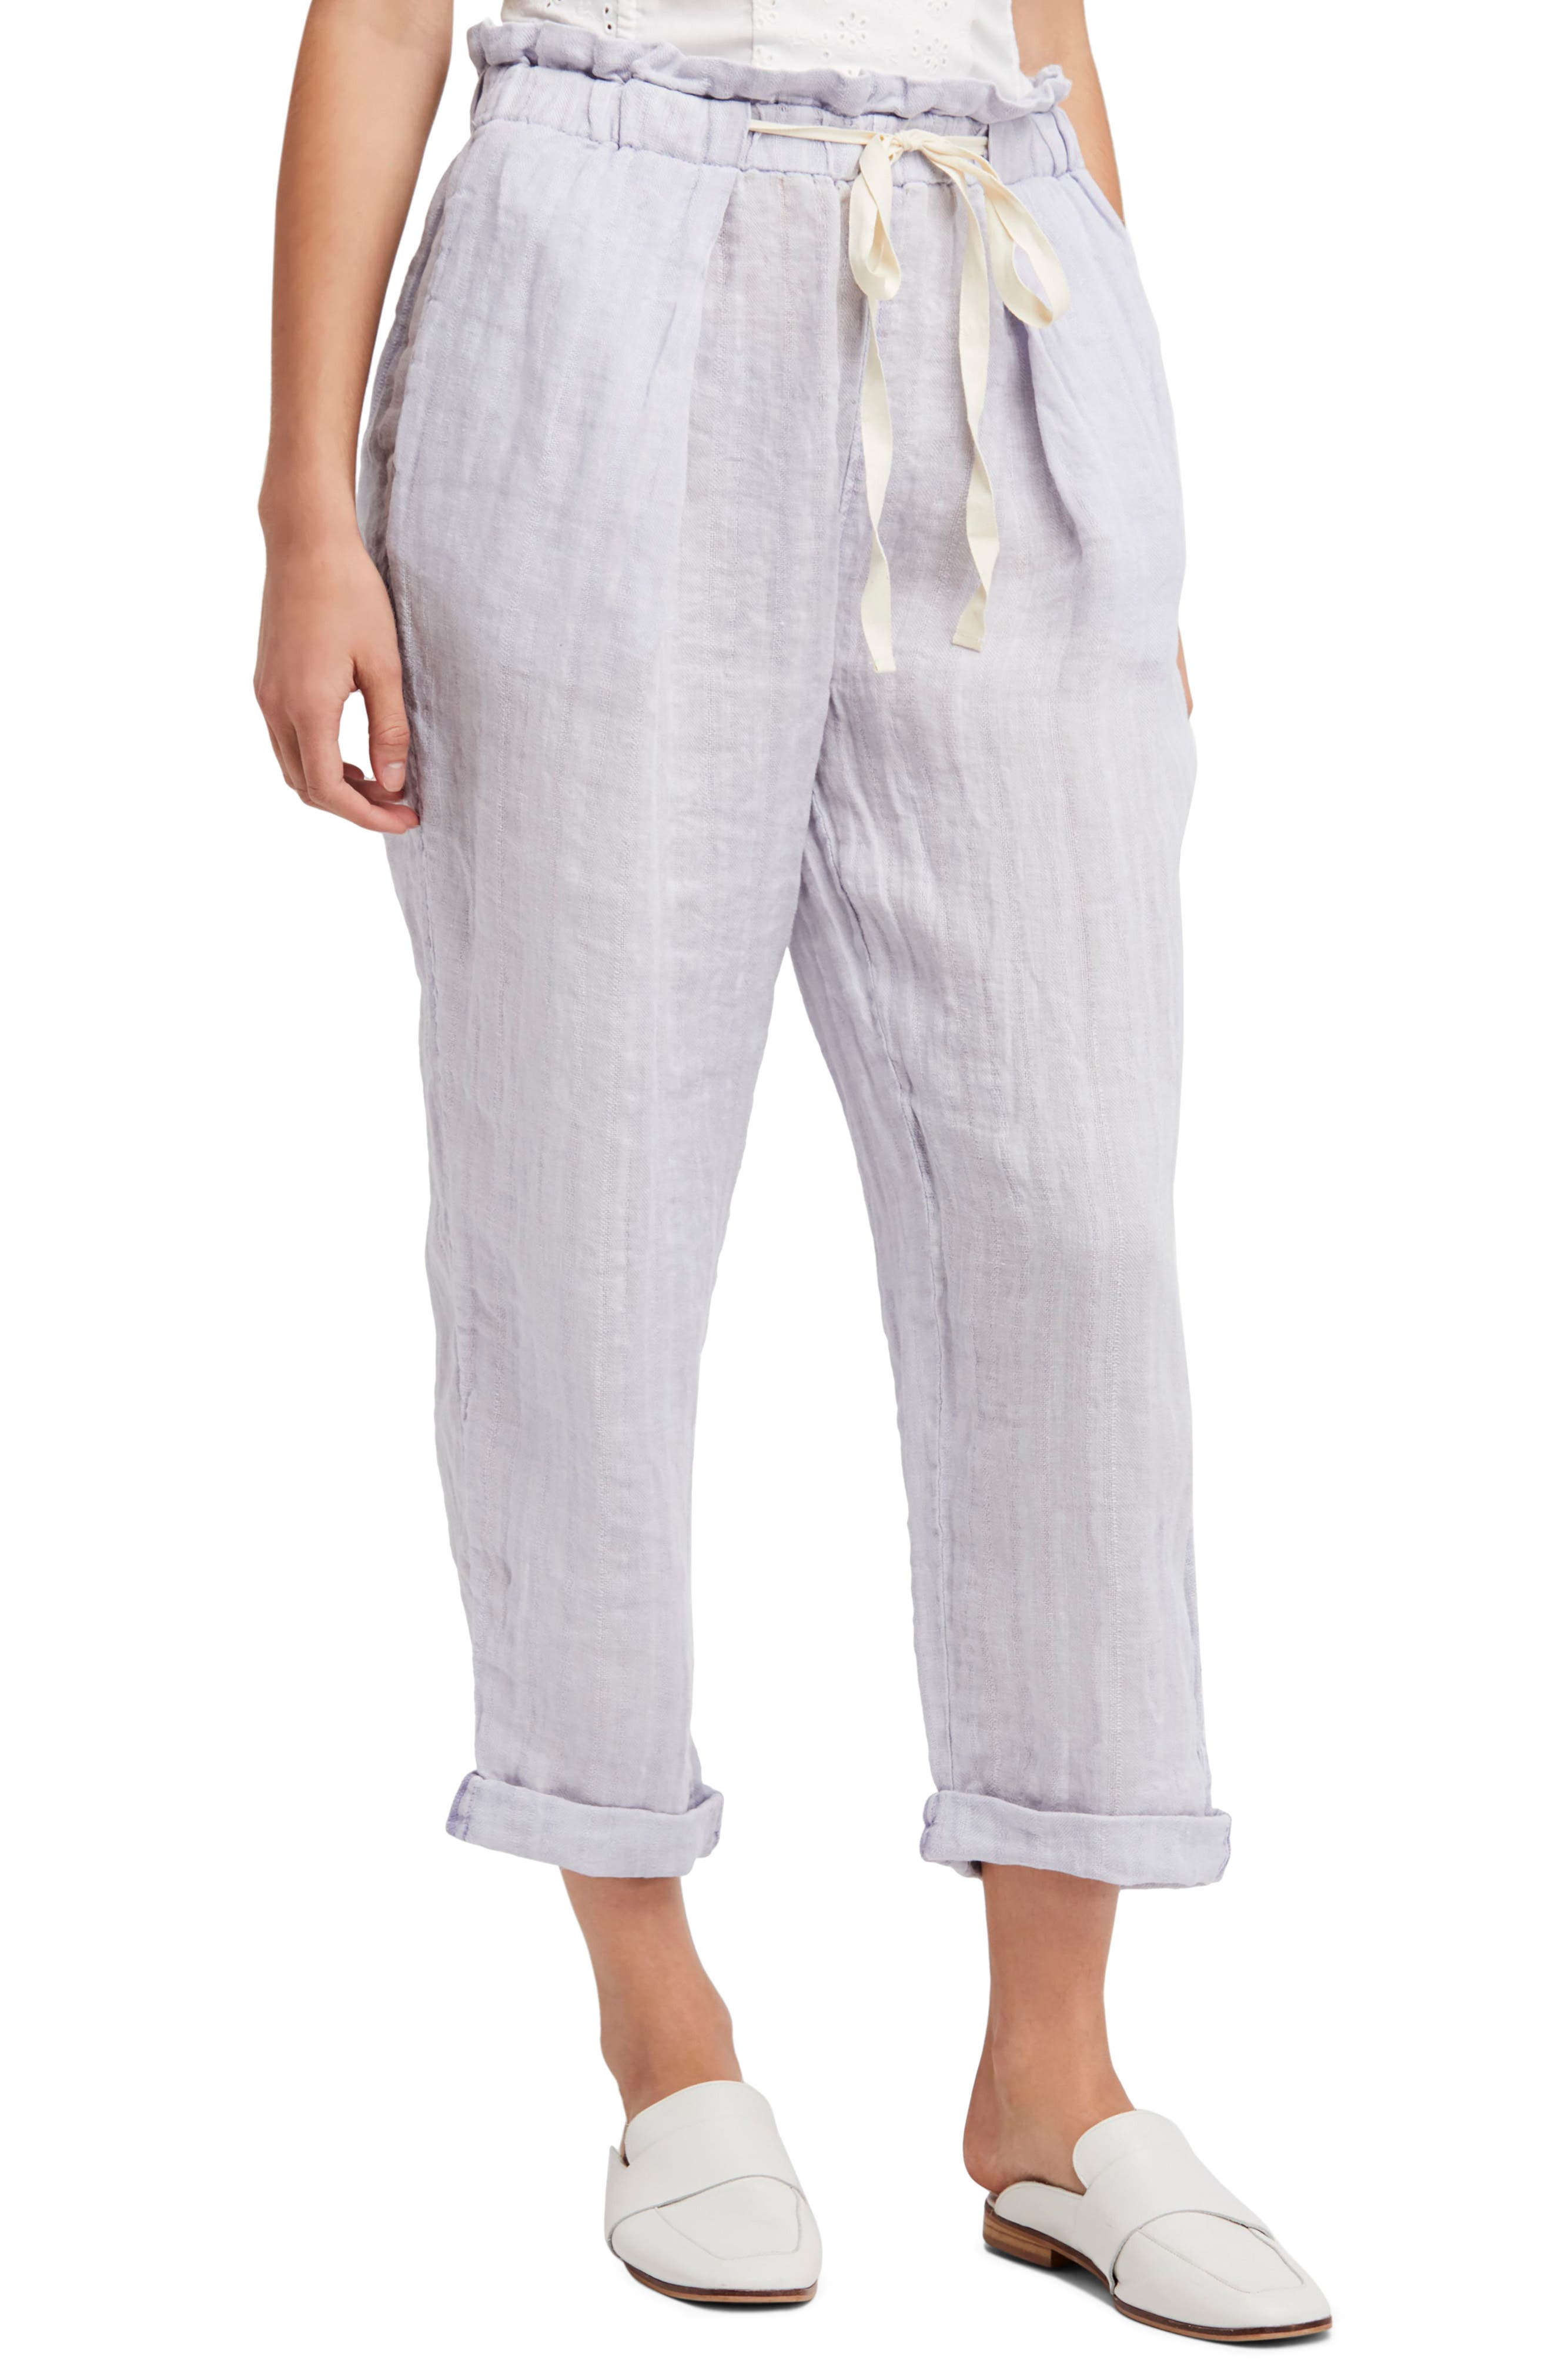 Only over You Linen Trousers,                             Main thumbnail 1, color,                             Pearl